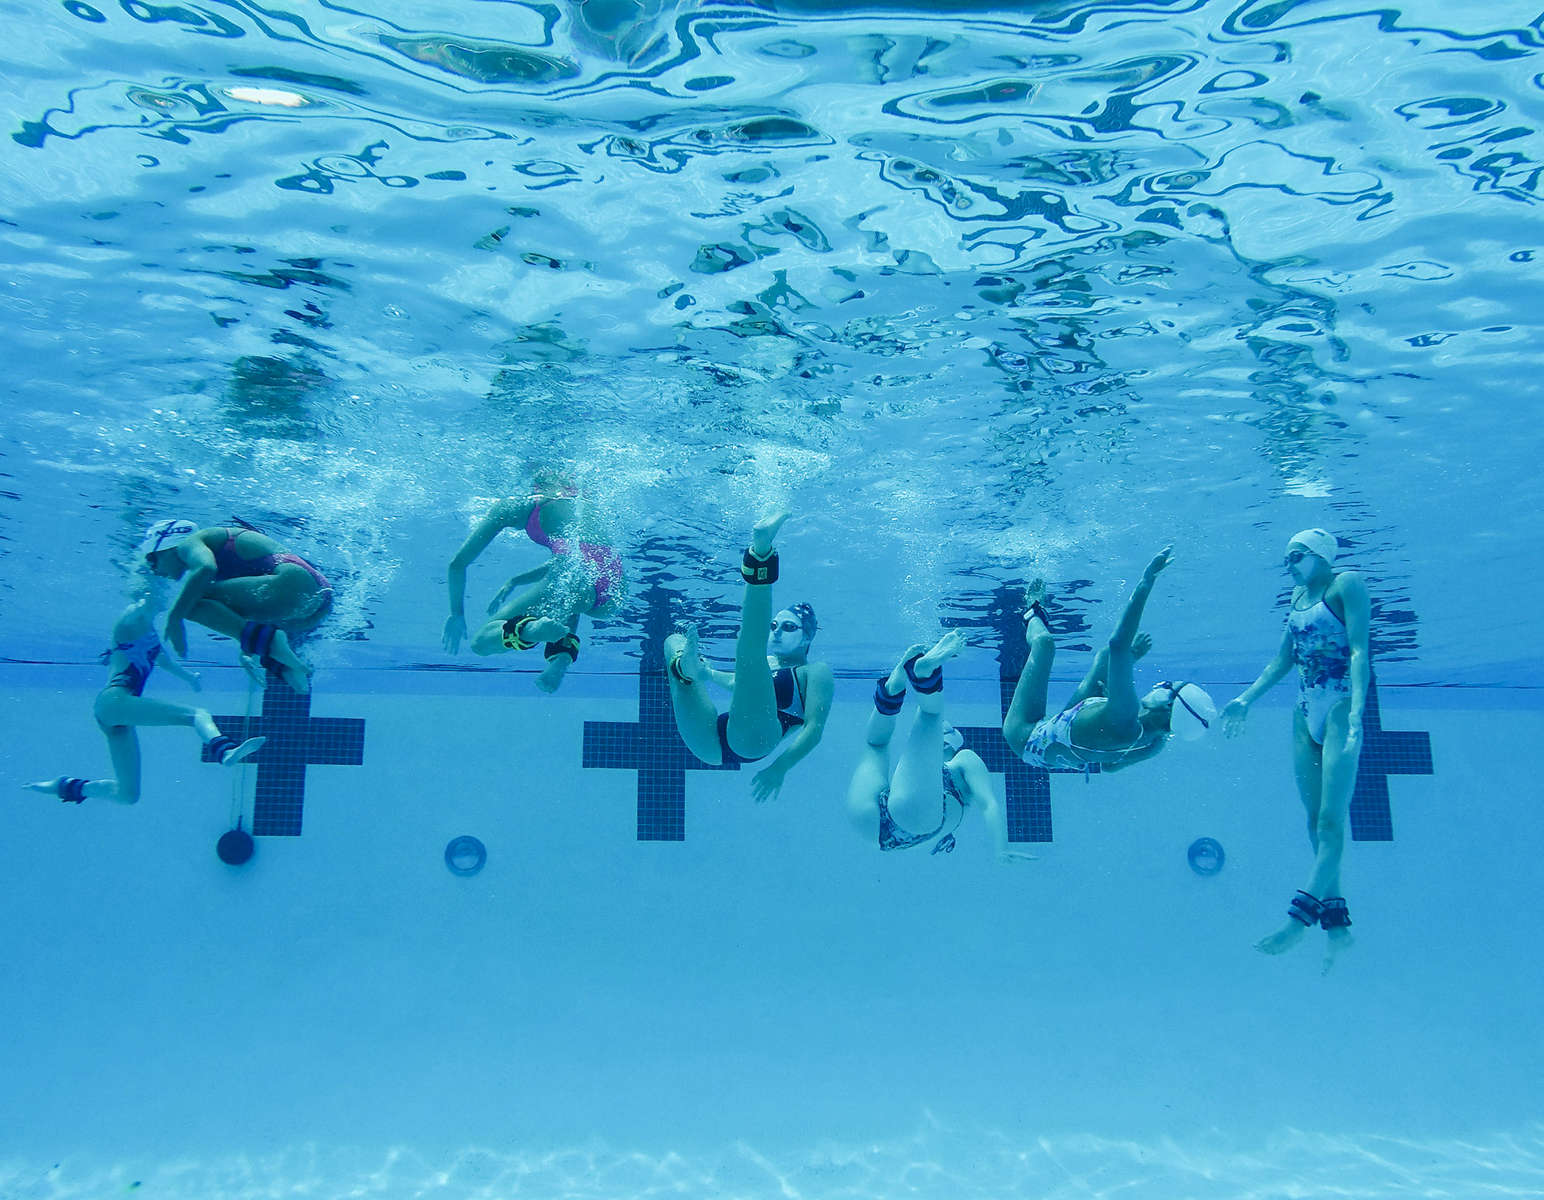 The US junior synchronized swimming team trains with additional weights on their feets.